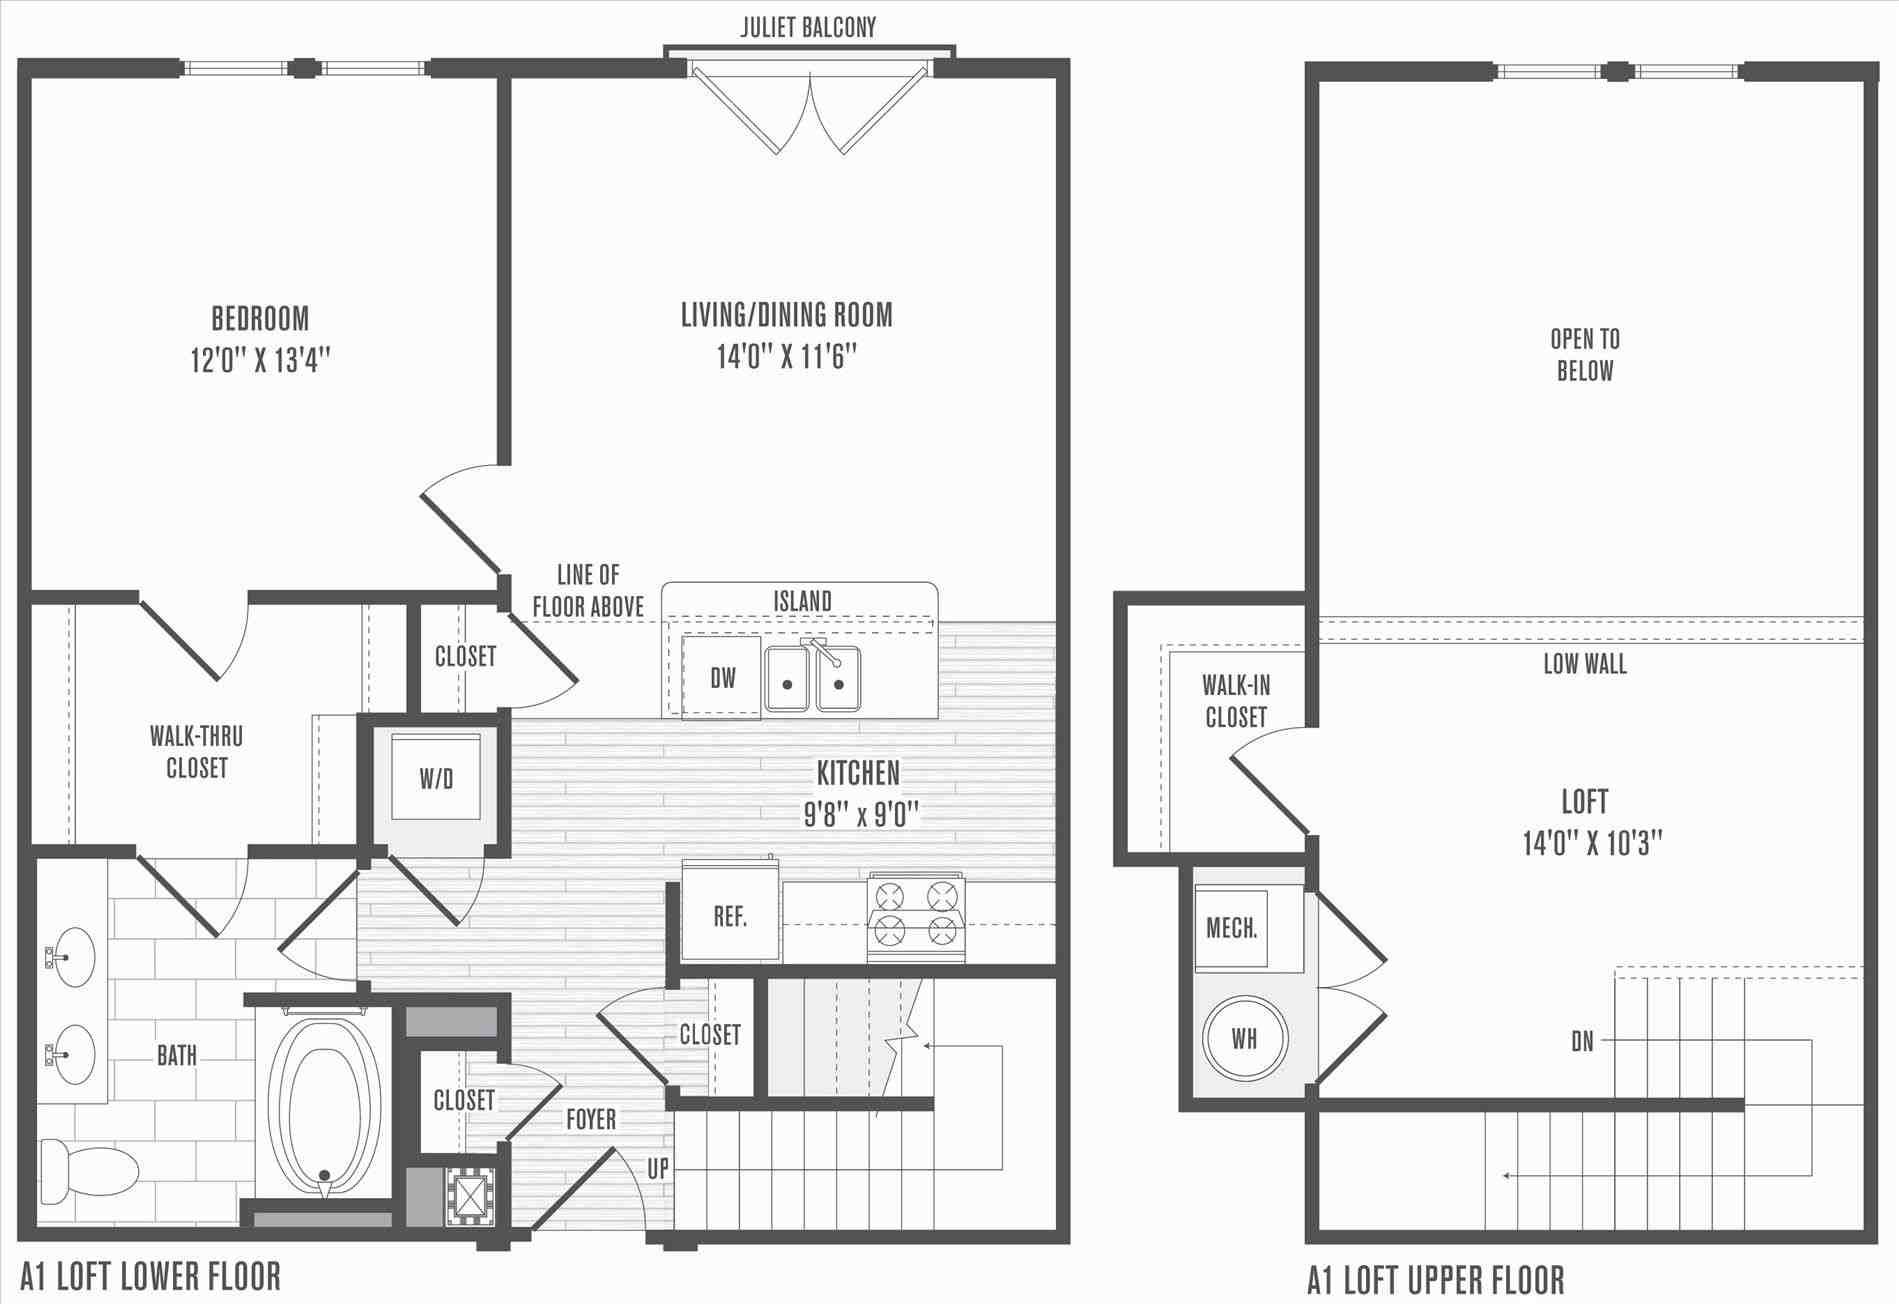 Apartment Plans 2 Bedroom Full Size Of Interior Small Apartment Ideas Plans 2 Bedroom Modern H Bedroom Floor Plans Apartment Floor Plans House Plan With Loft